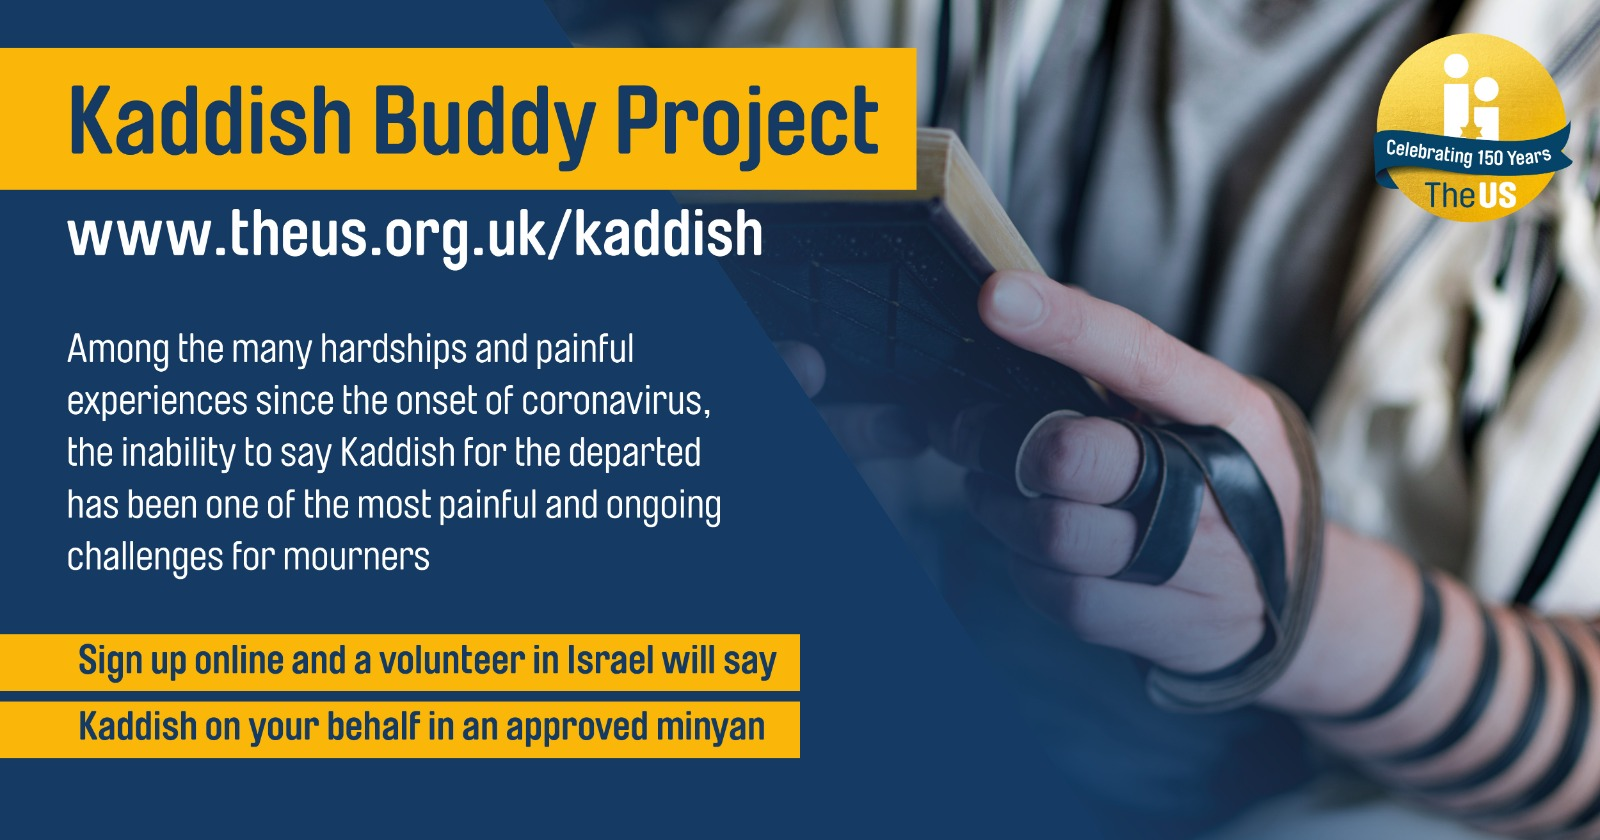 image of Kaddish buddy project